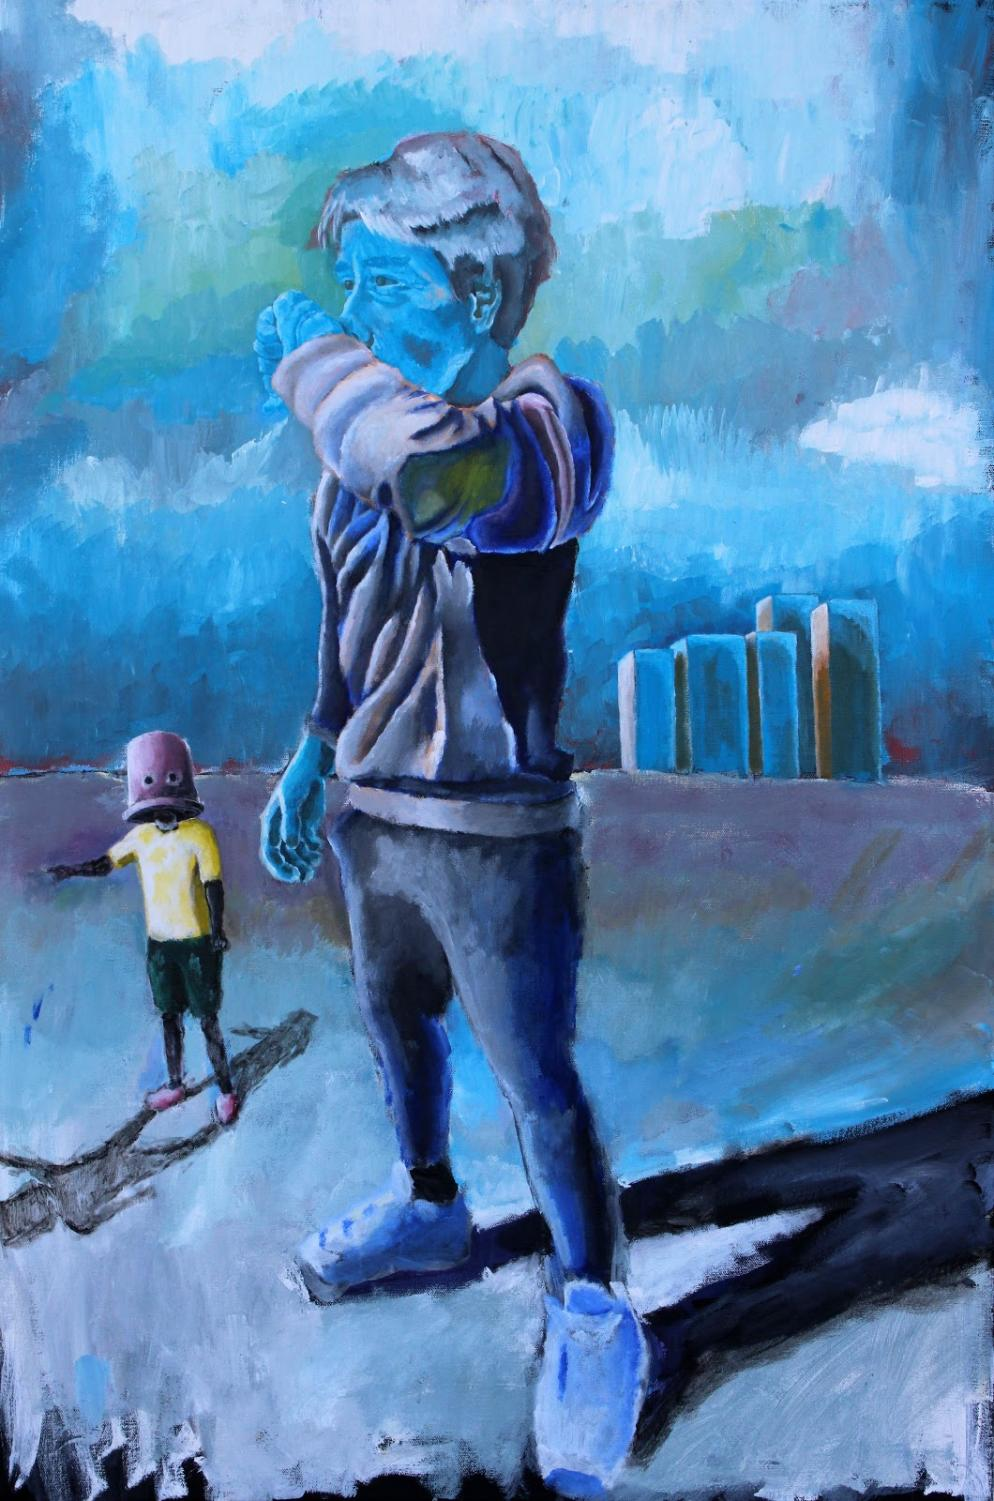 This piece was inspired by the housing crisis in Iran. Those living outside of Tehran have a lack of basic resources.